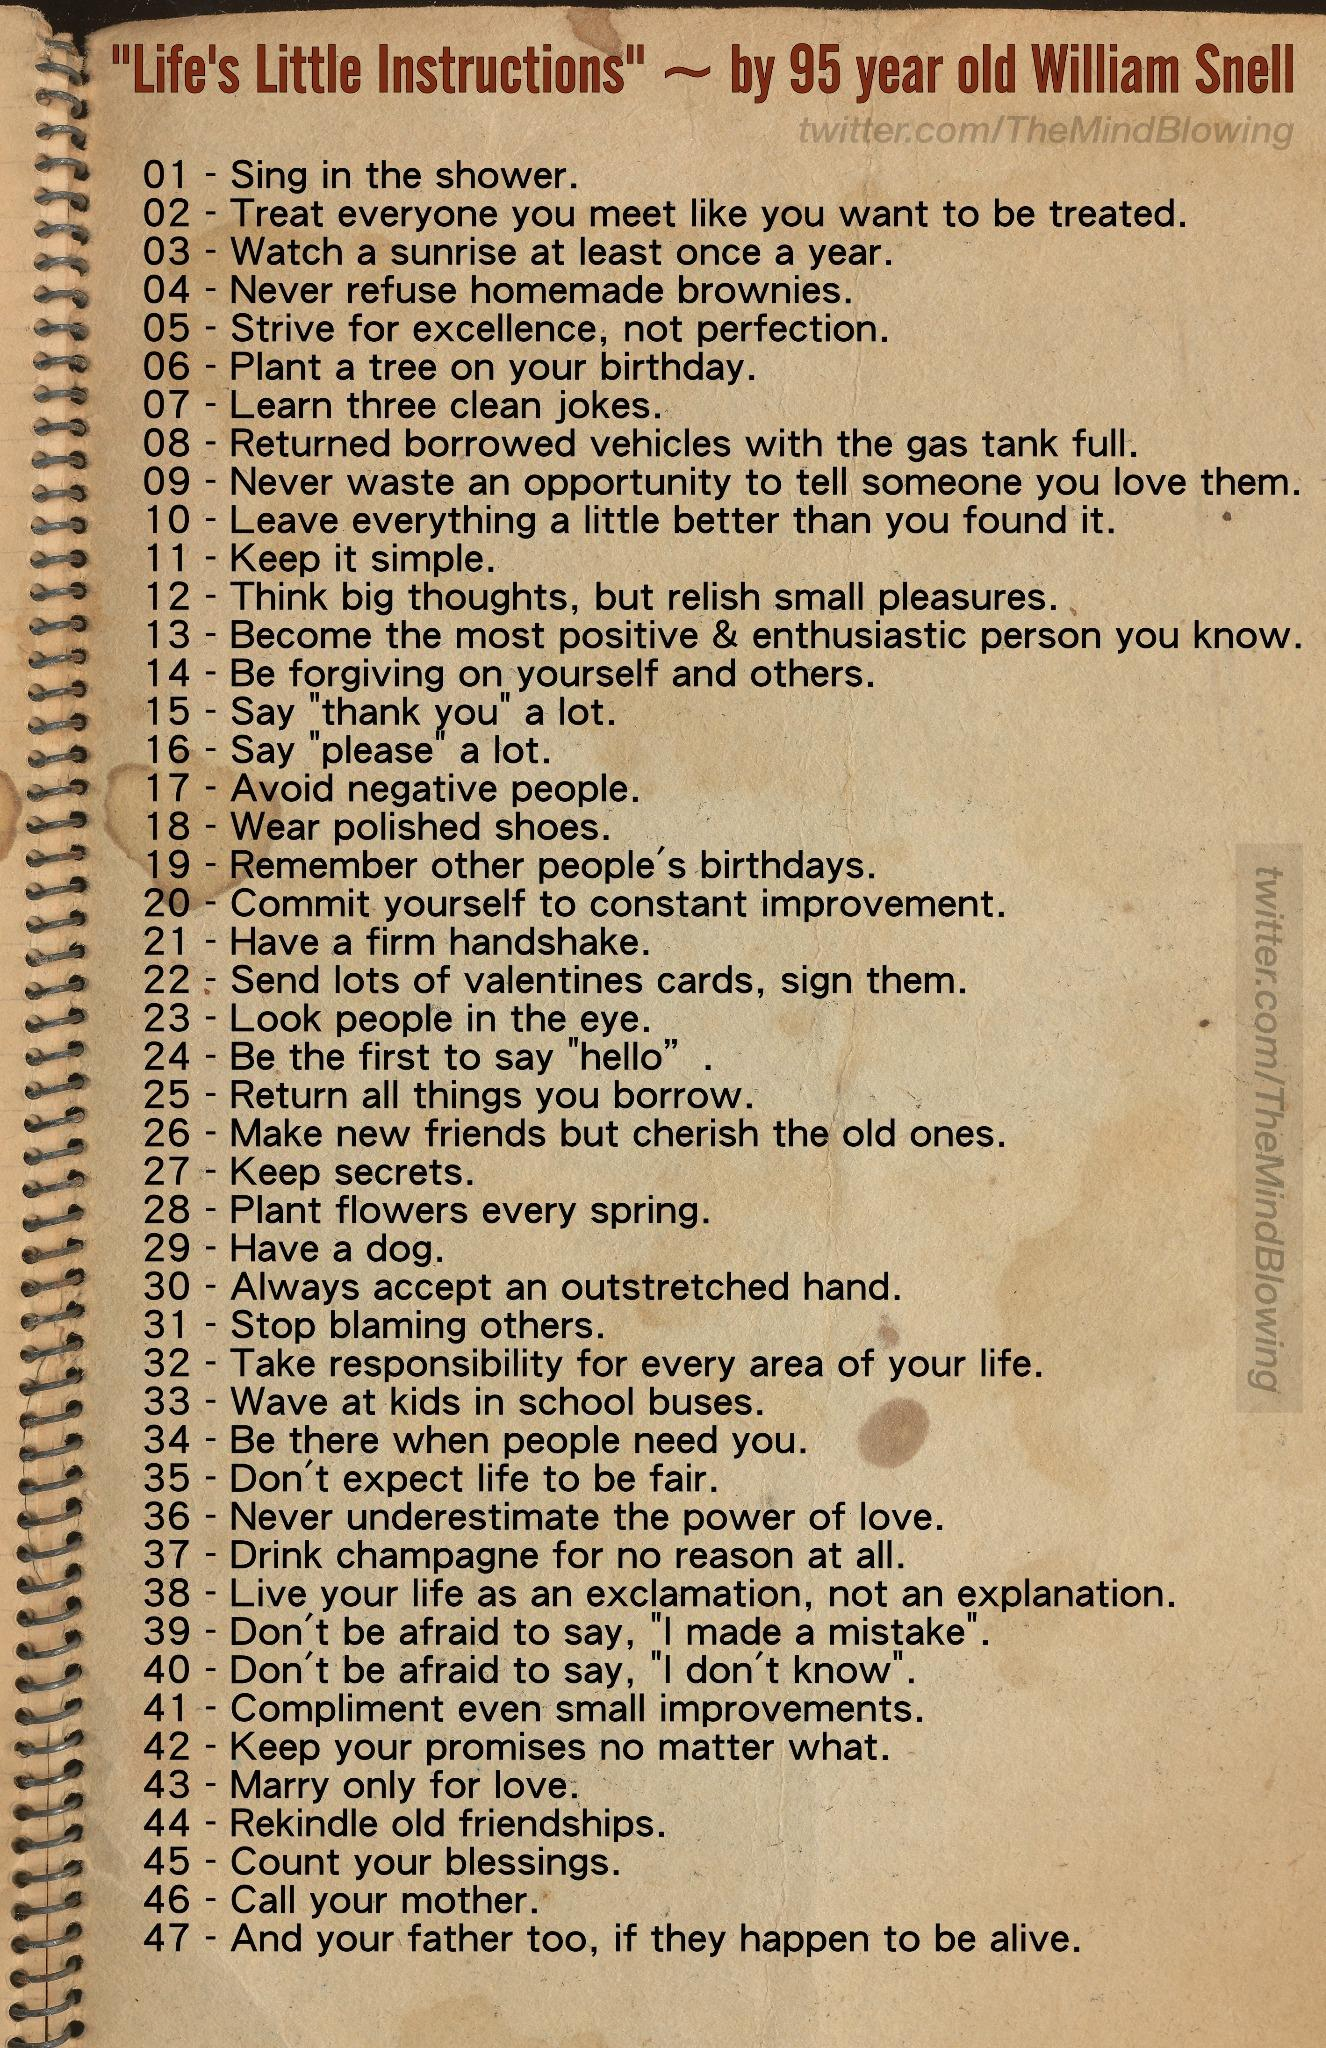 "#MustShare - ""Life's Little Instructions."" By 95 year old man. http://t.co/iwO9yHHdP0"